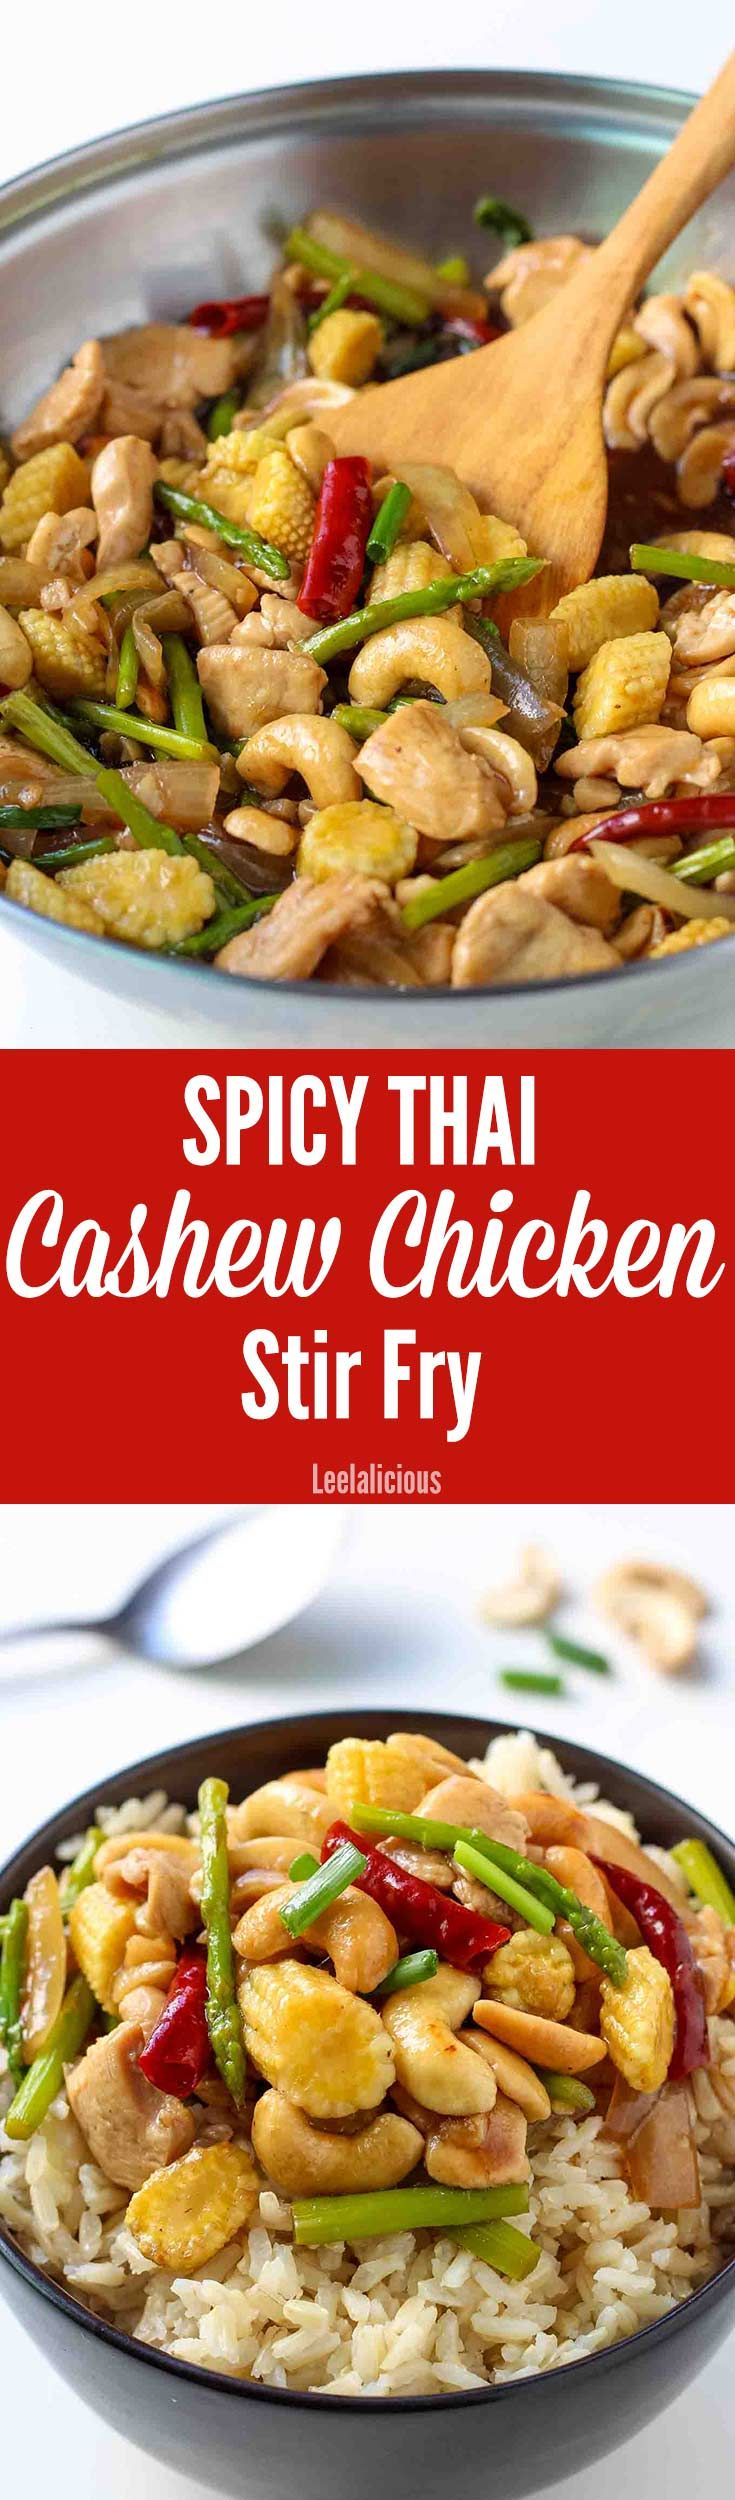 This delicious recipe for Thai Cashew Chicken Stir Fry is super quick to make and delivers big time on authentic Asian flavors. It is perfect for easy, weeknight dinners.